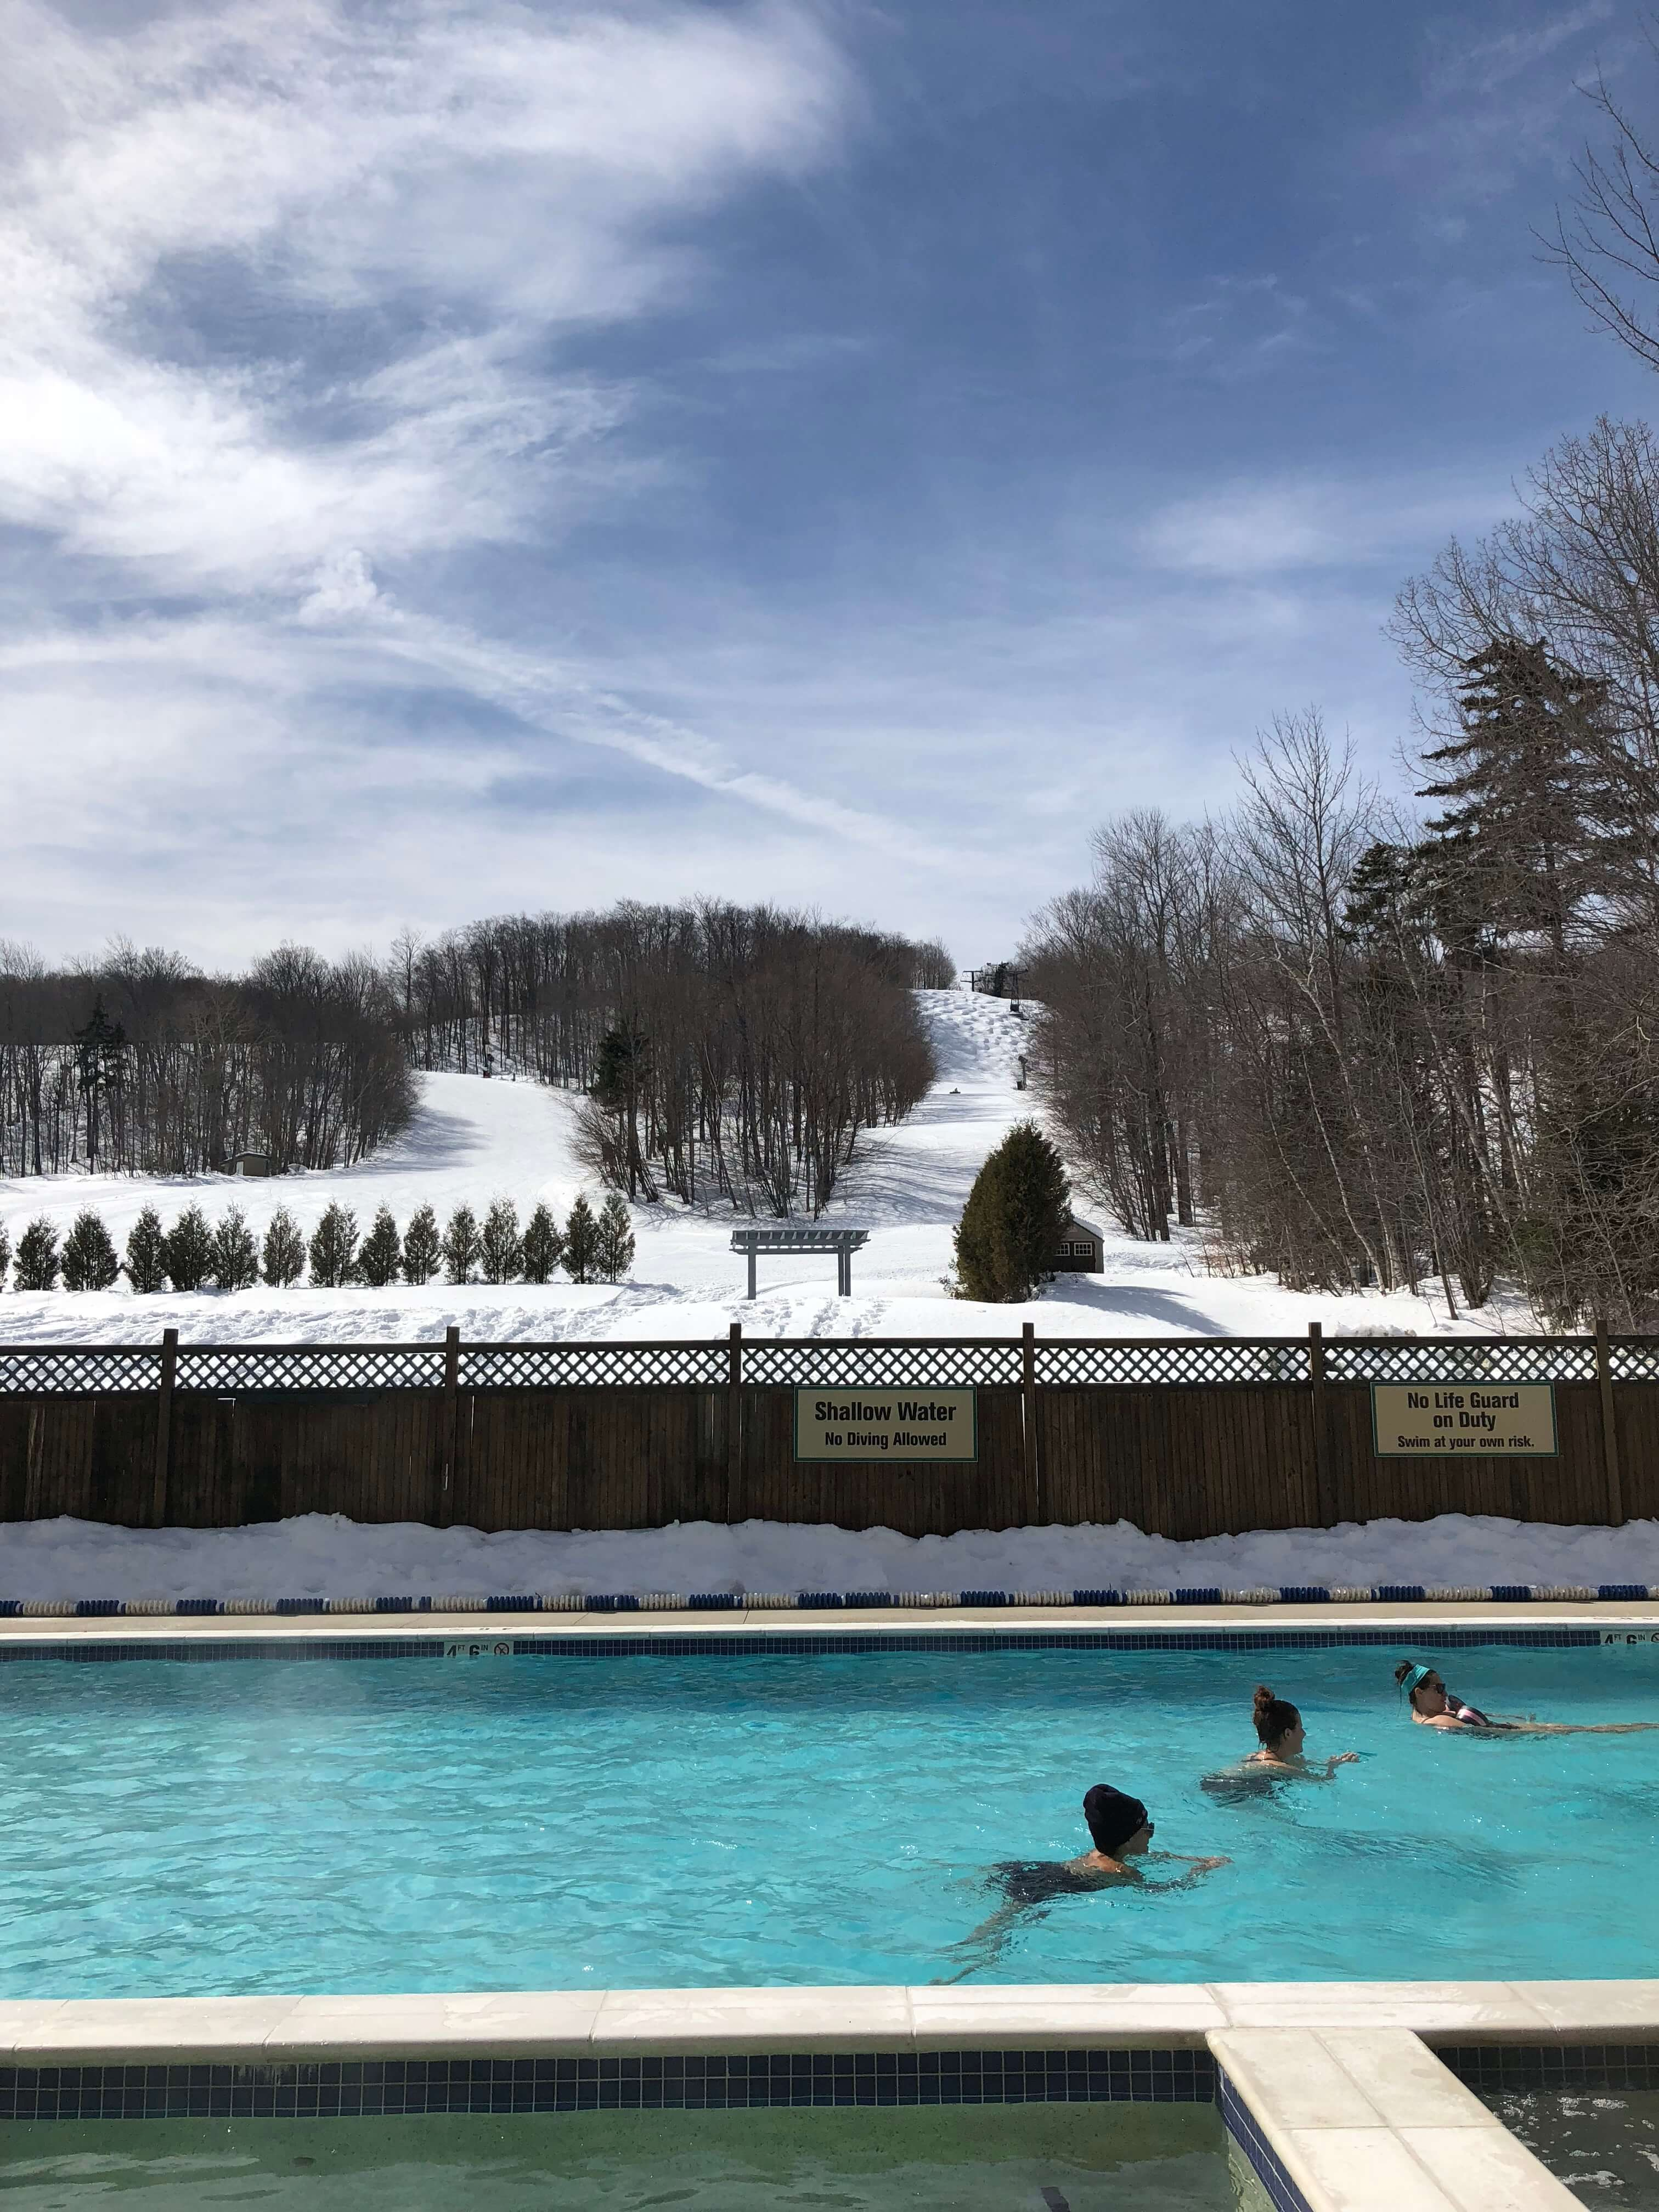 learning to ski as an adult pool time